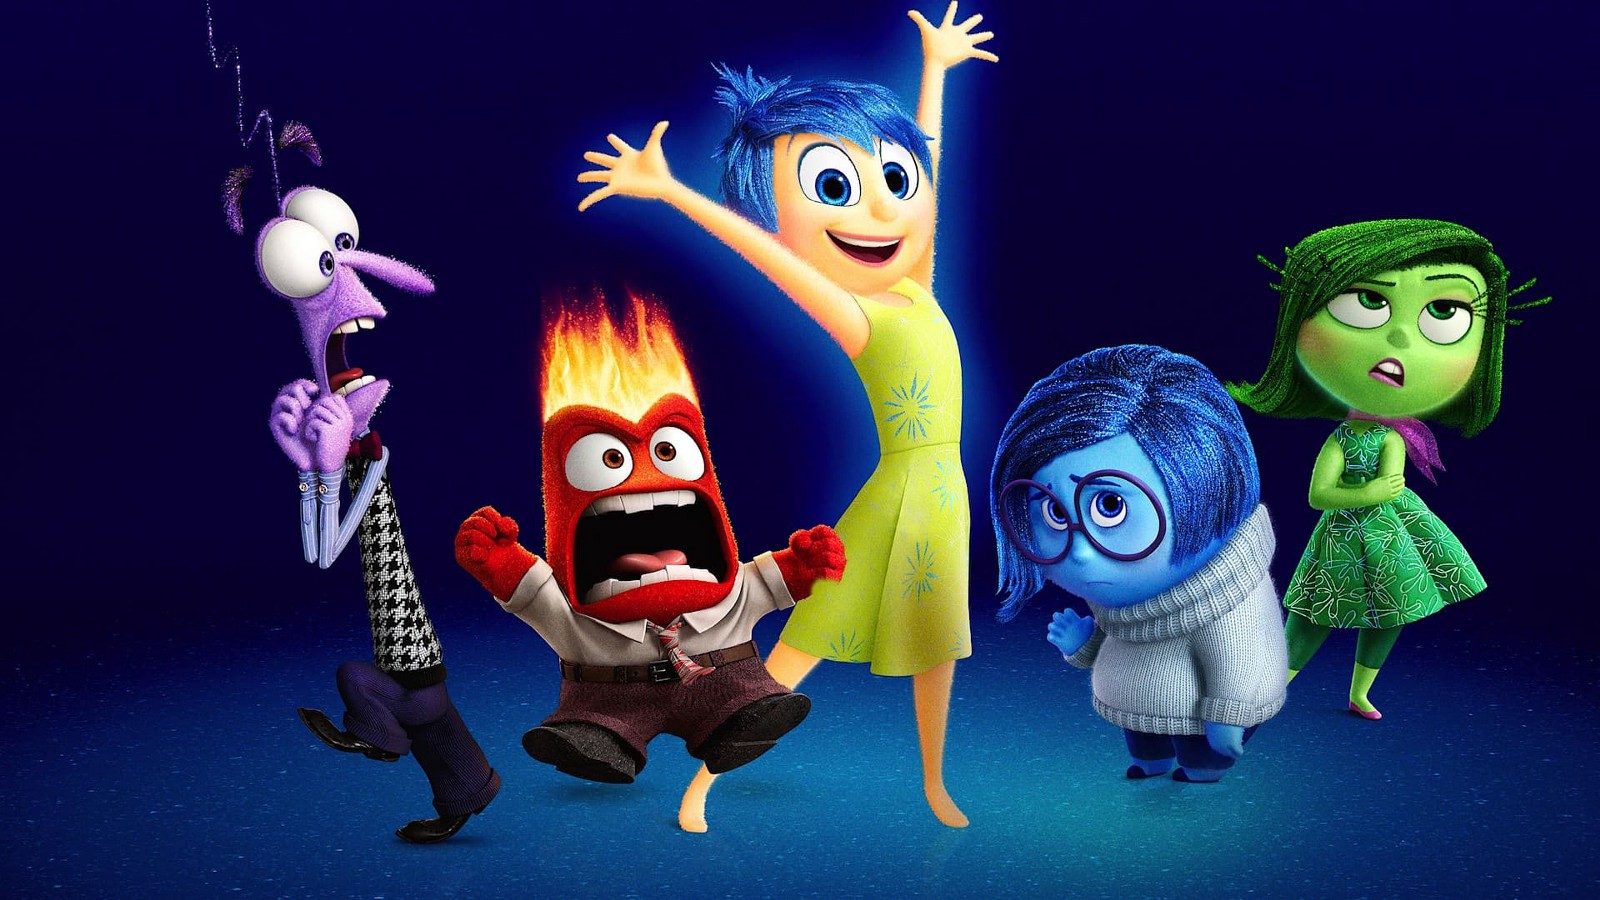 The Personified Emotions In Inside Out